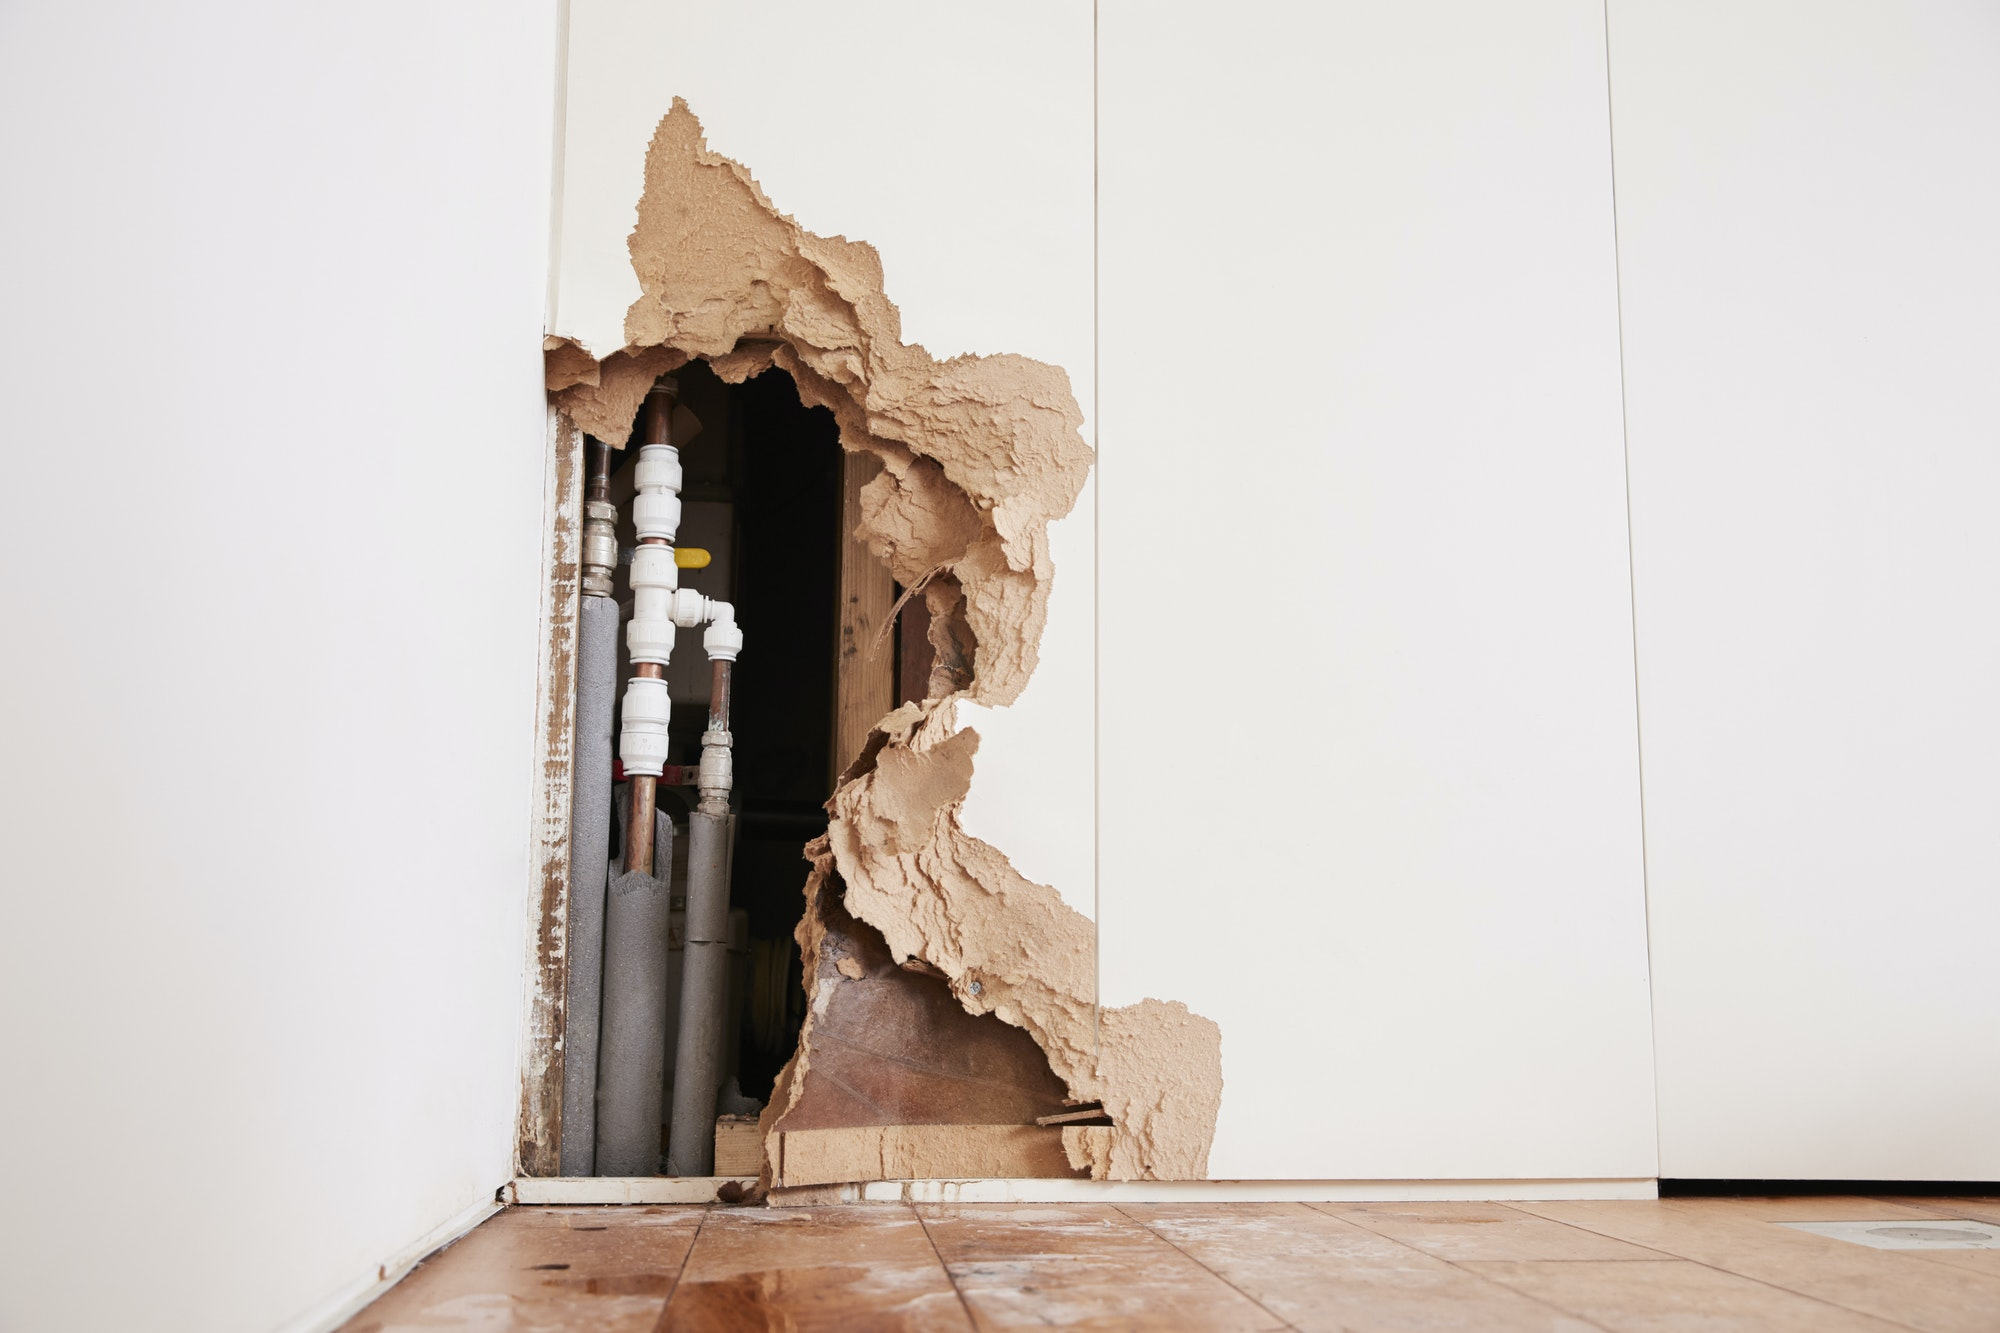 Damaged wall exposing burst water pipes after flood